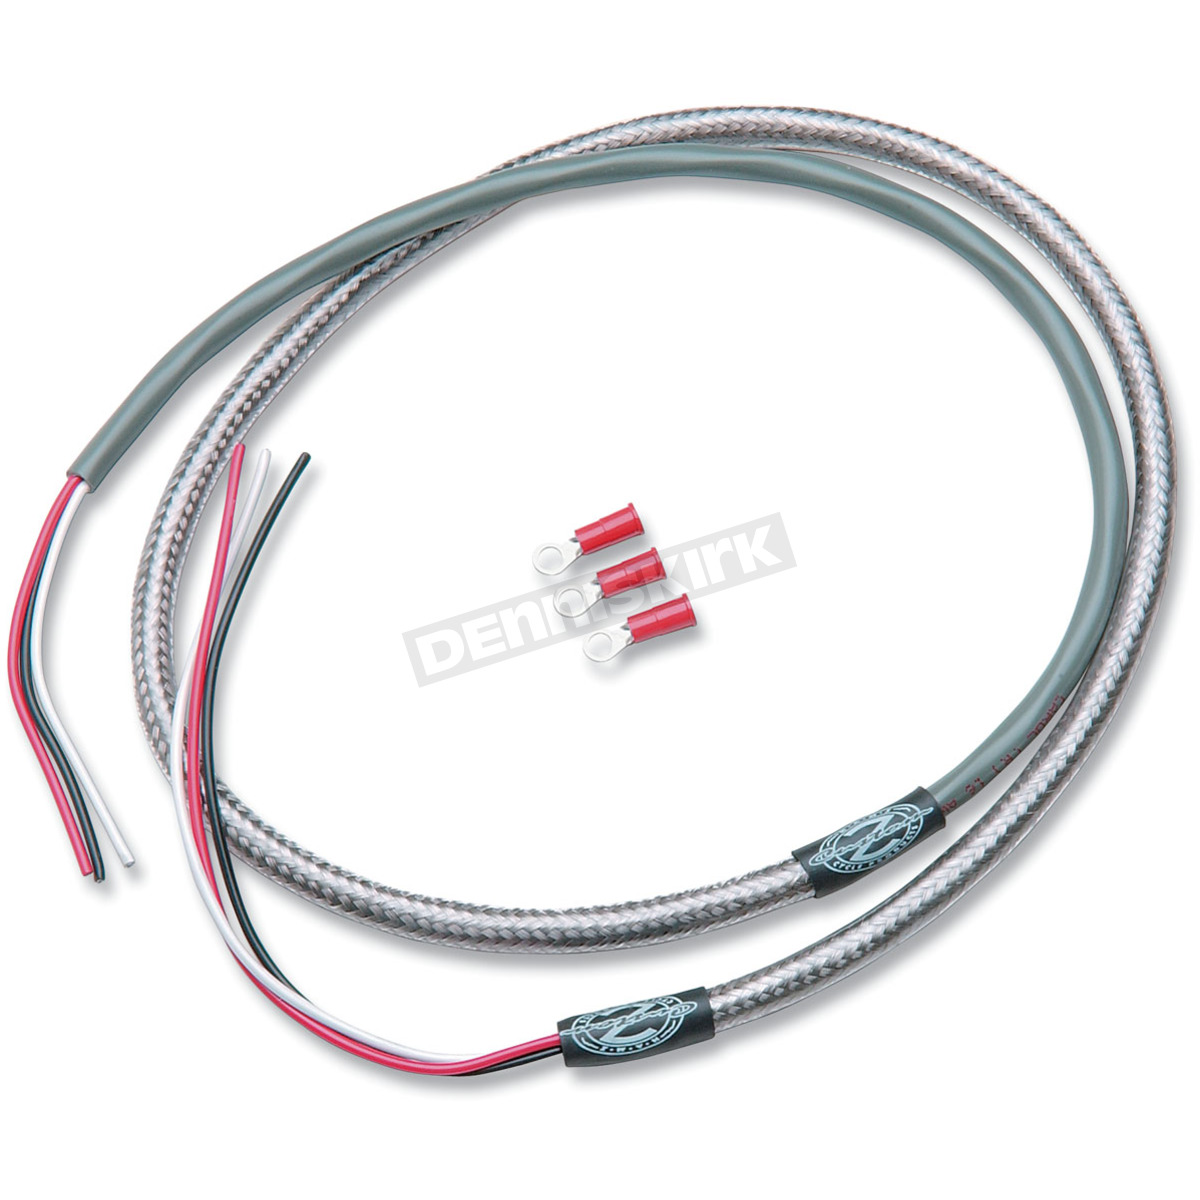 namz custom cycle products 48 in tachometer braided stainless steel wire harness nth4801